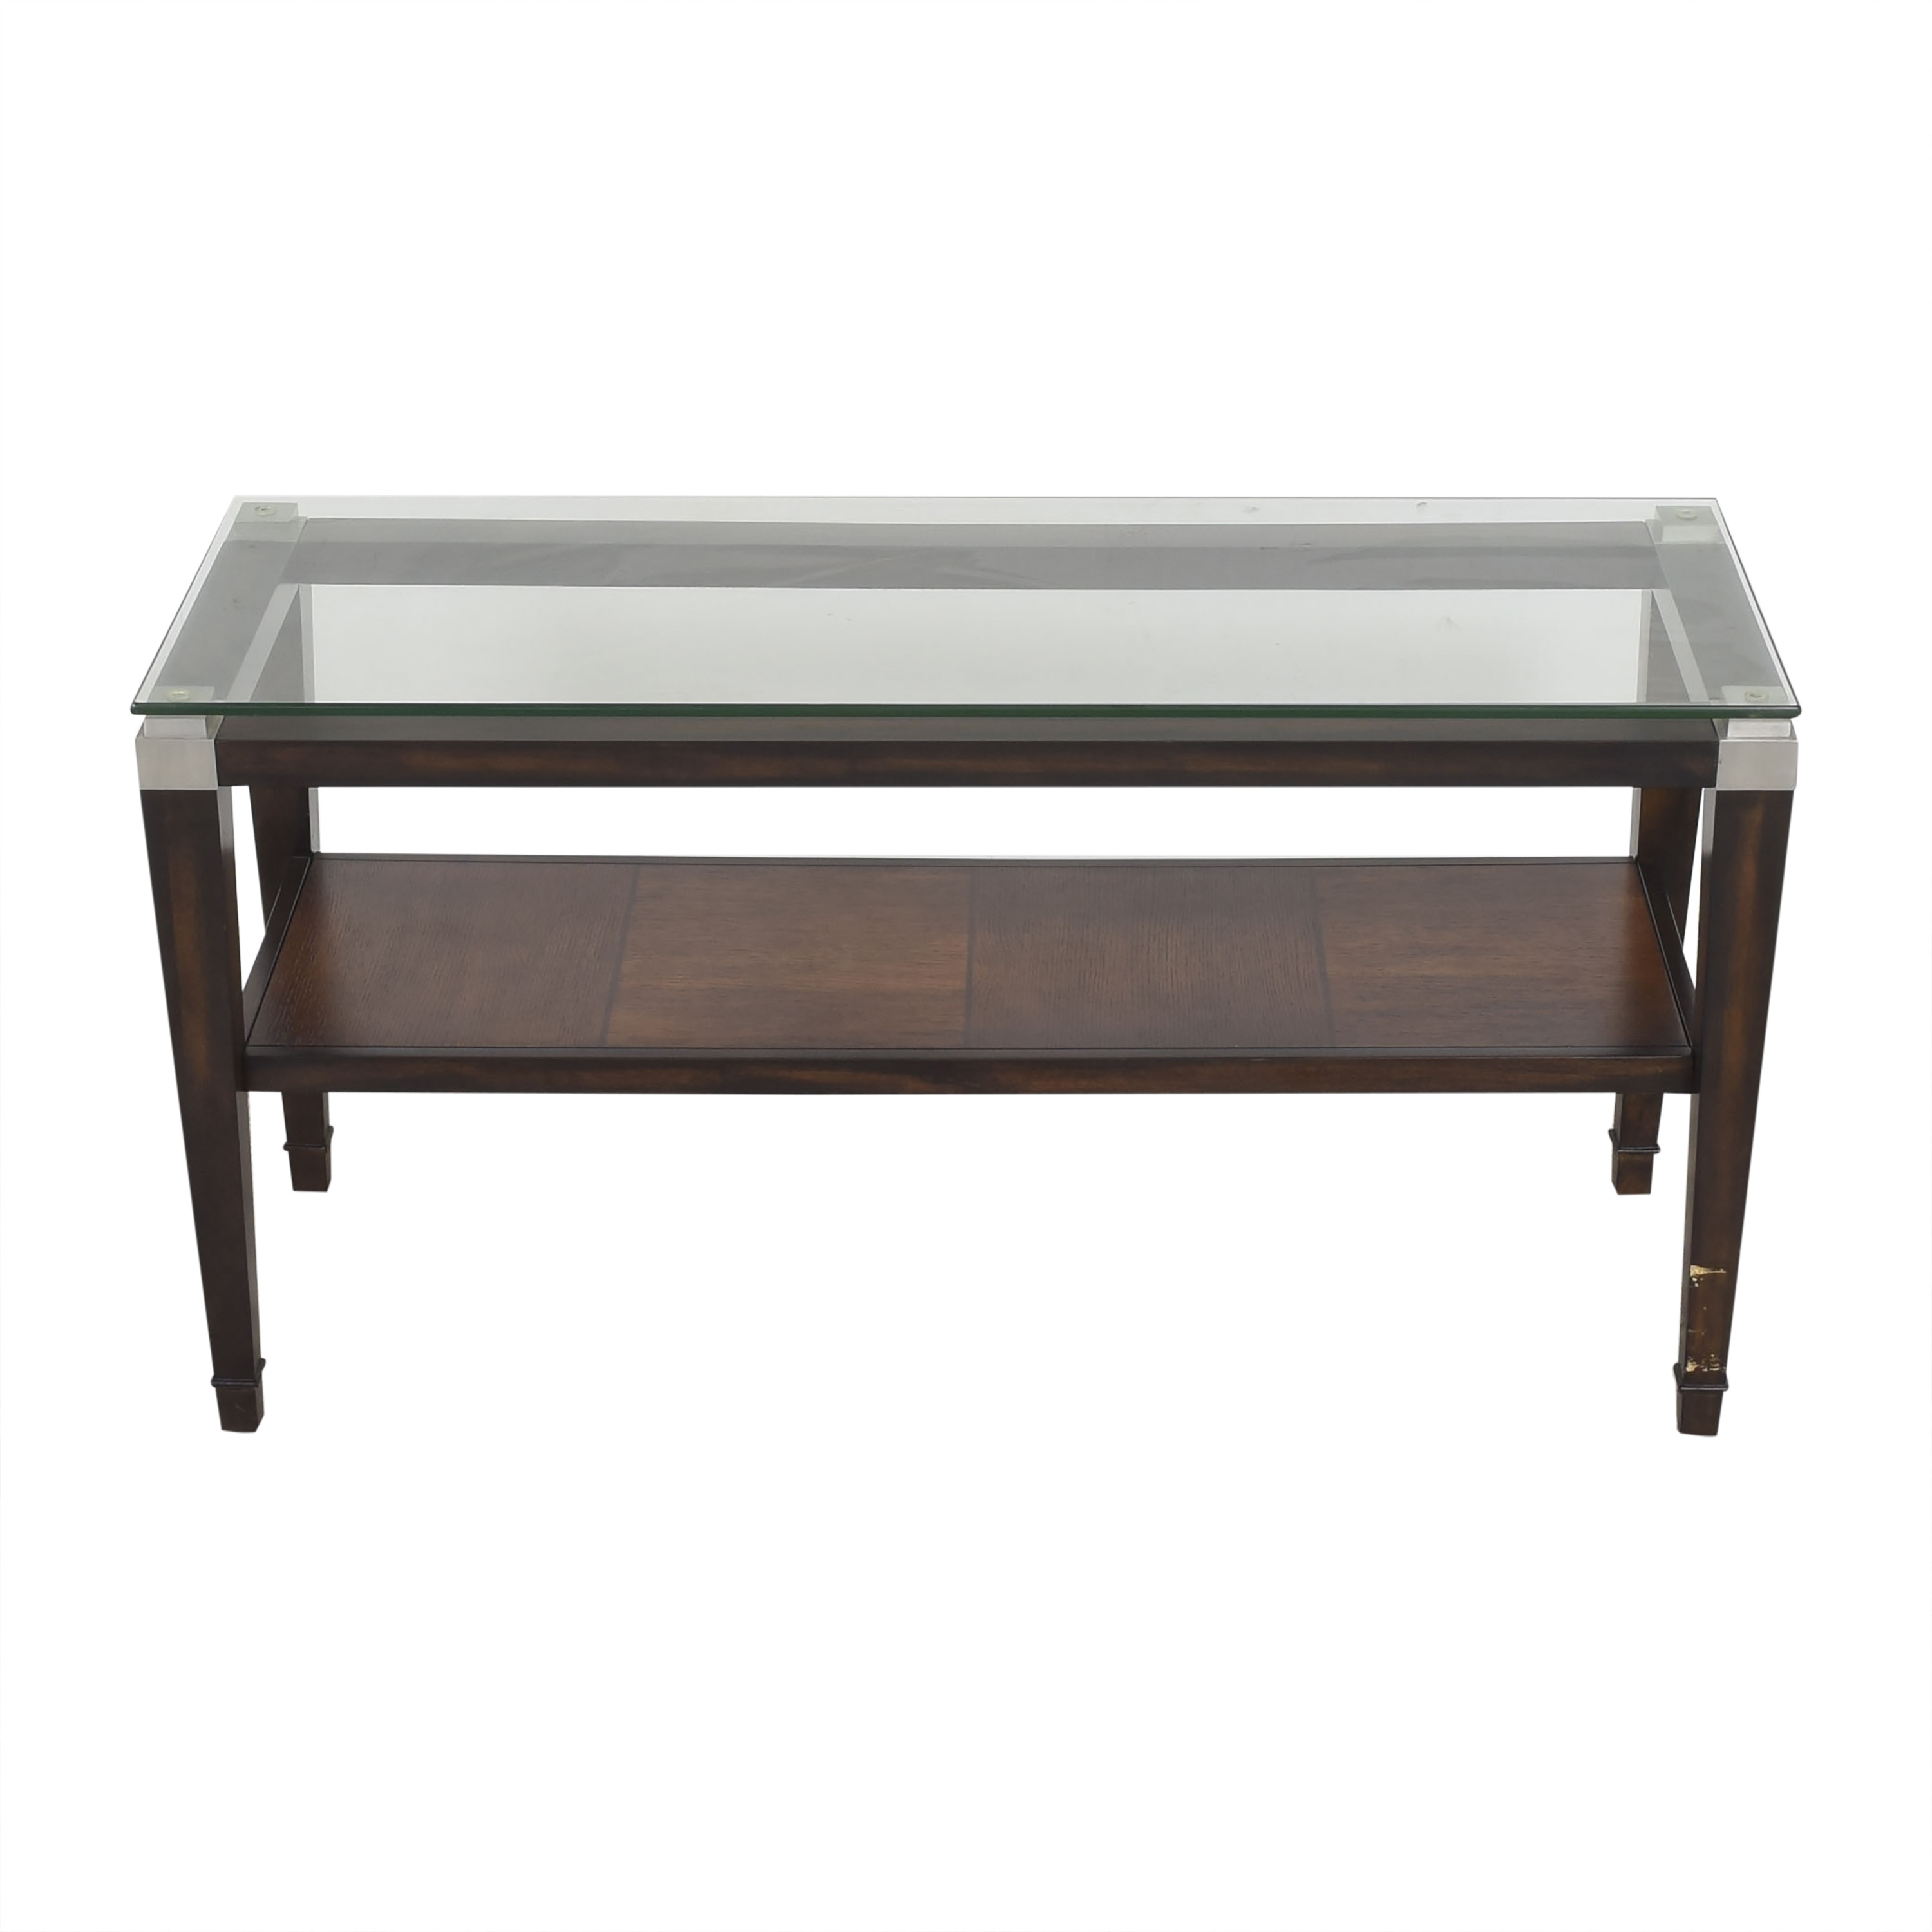 Raymour & Flanigan Dunhill Console Table sale